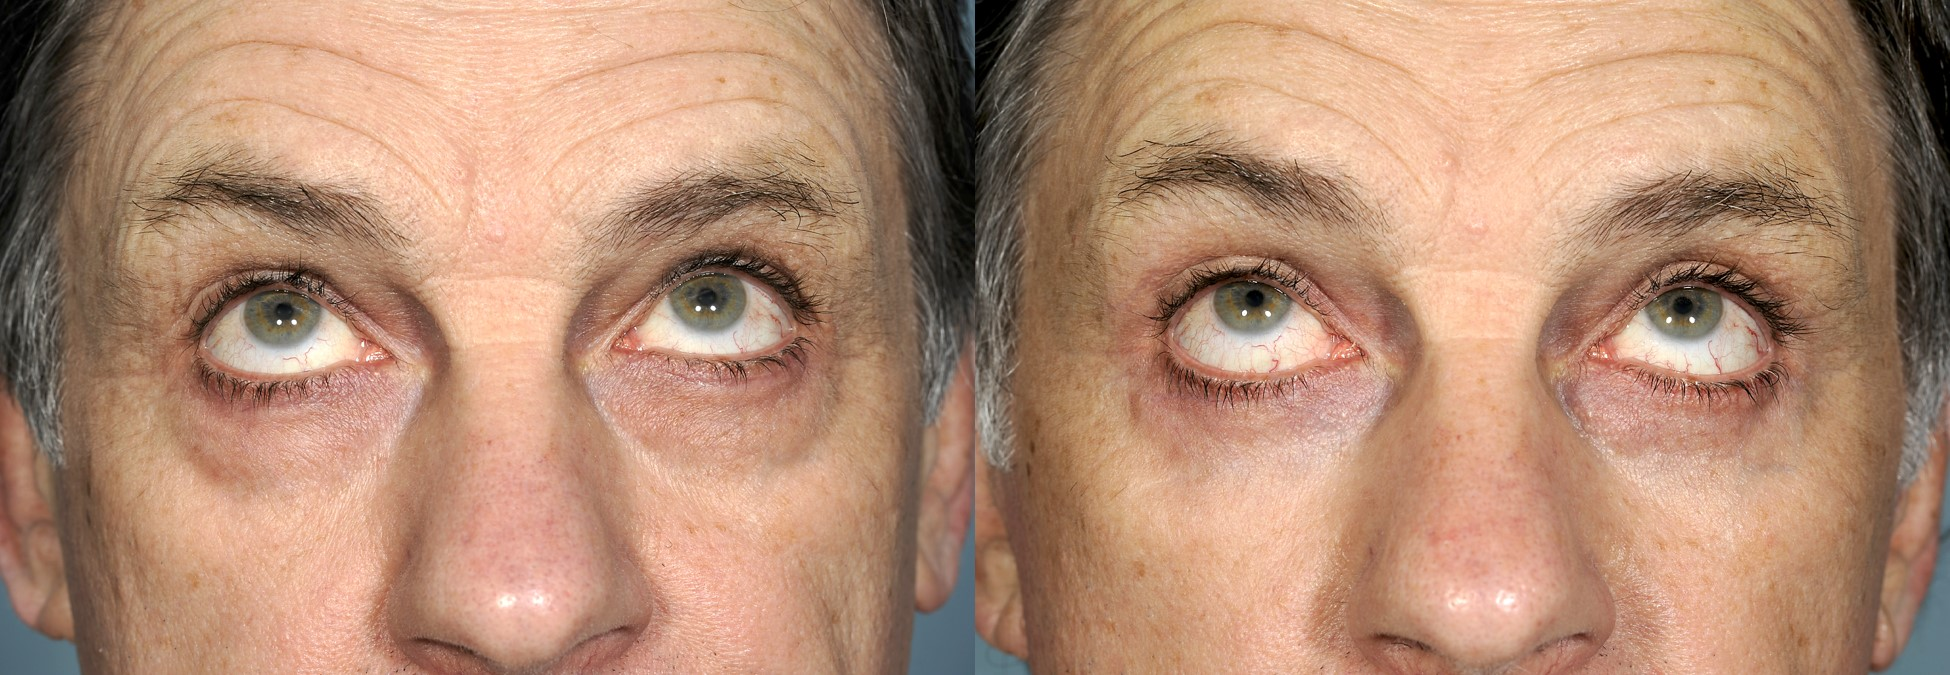 Before & 3 months after upper and lower blepharoplasty (eye lift)